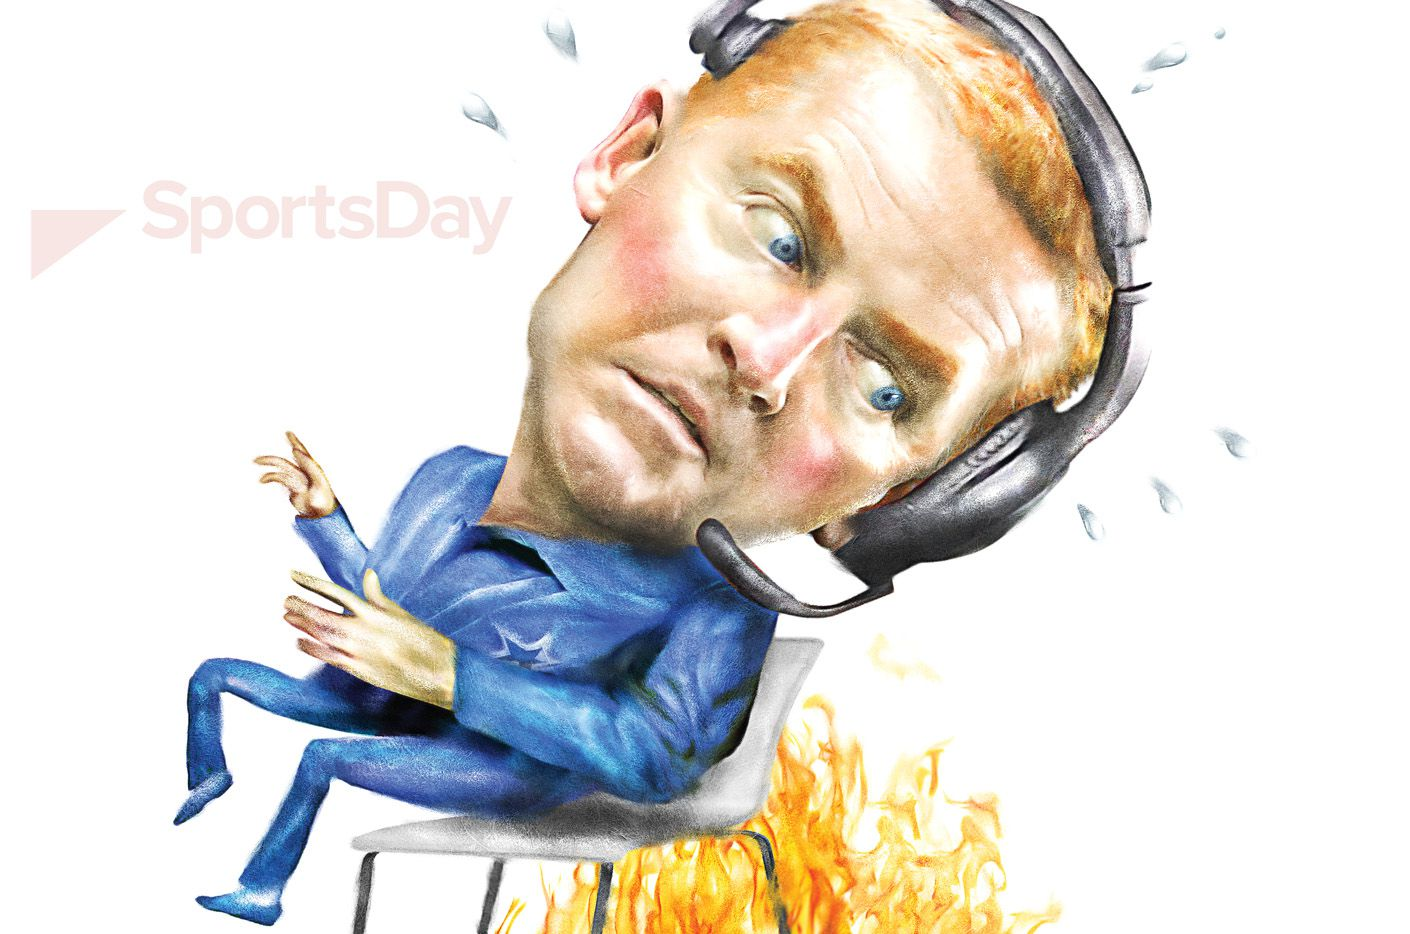 Illustration by Michael Hogue/The Dallas Morning News